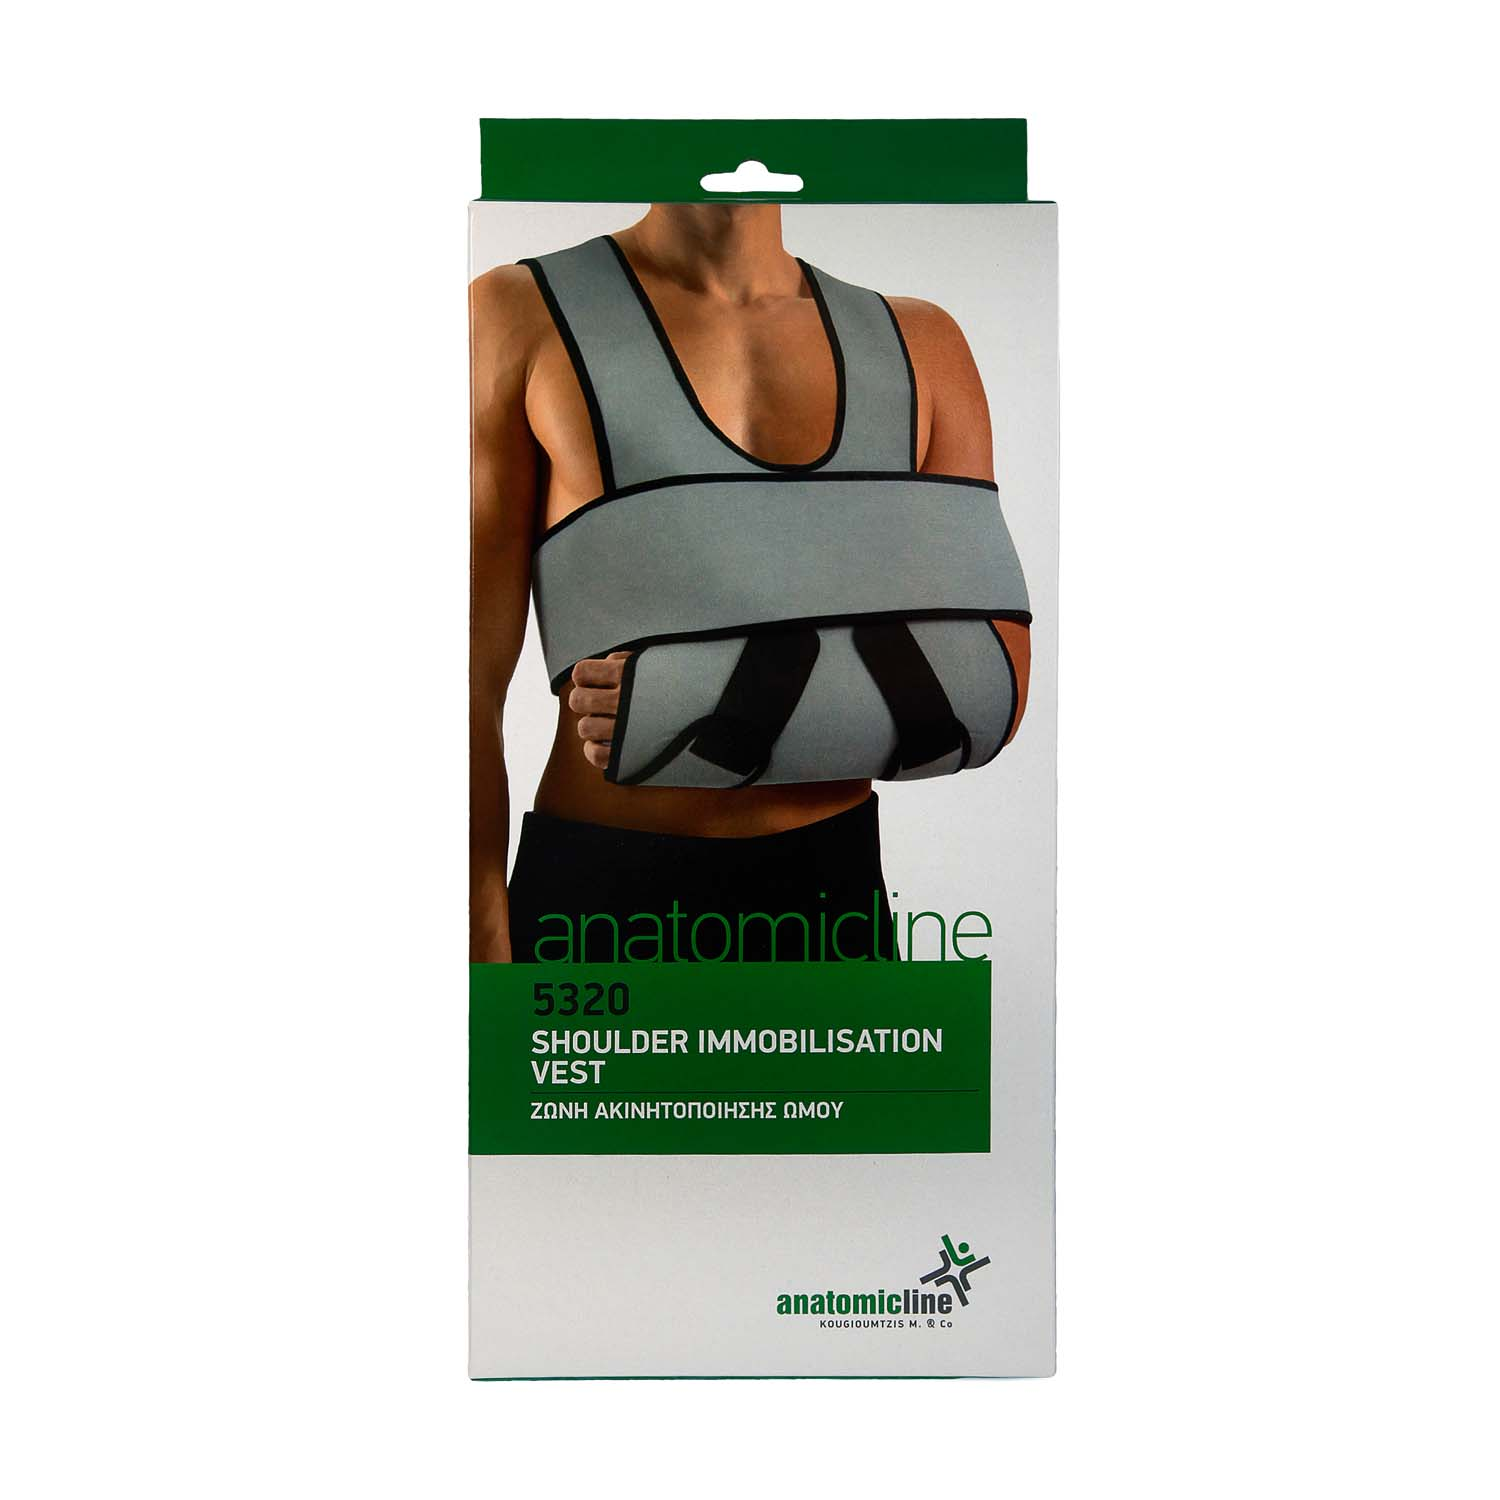 Shoulder immobilisation vest